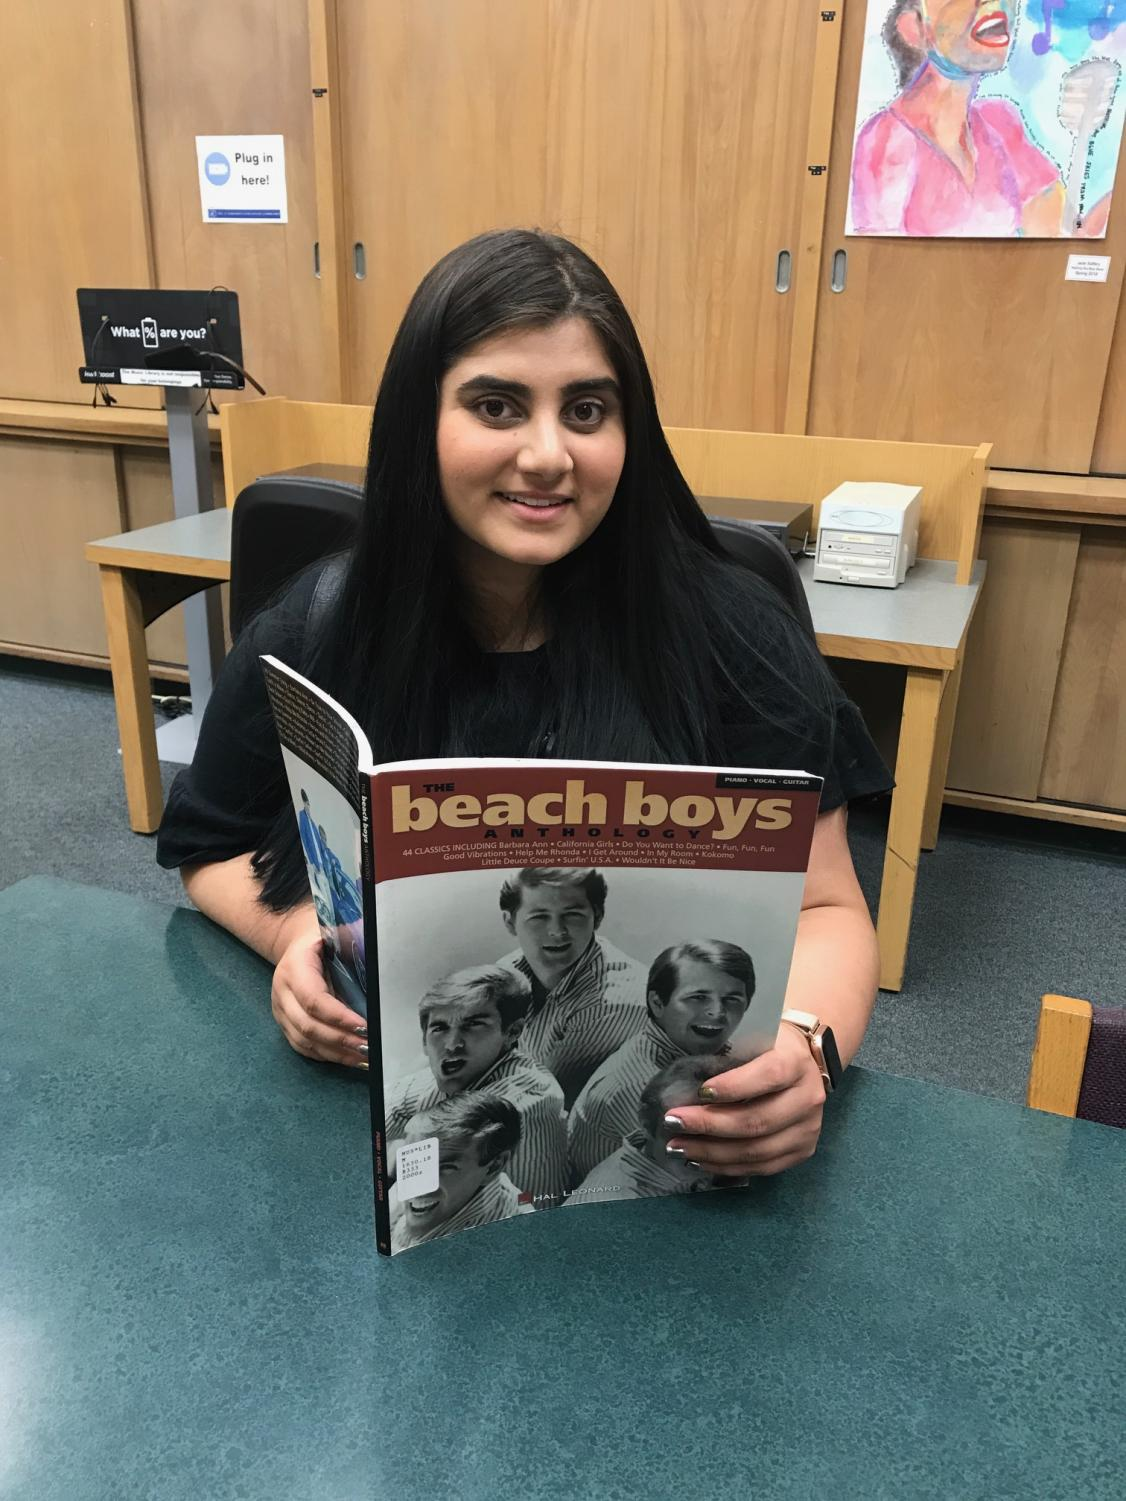 Noorulain Khuwar, 19, engineering major said her history of rock n' roll class is really cool and fun. Photo credit: Giselle Morales